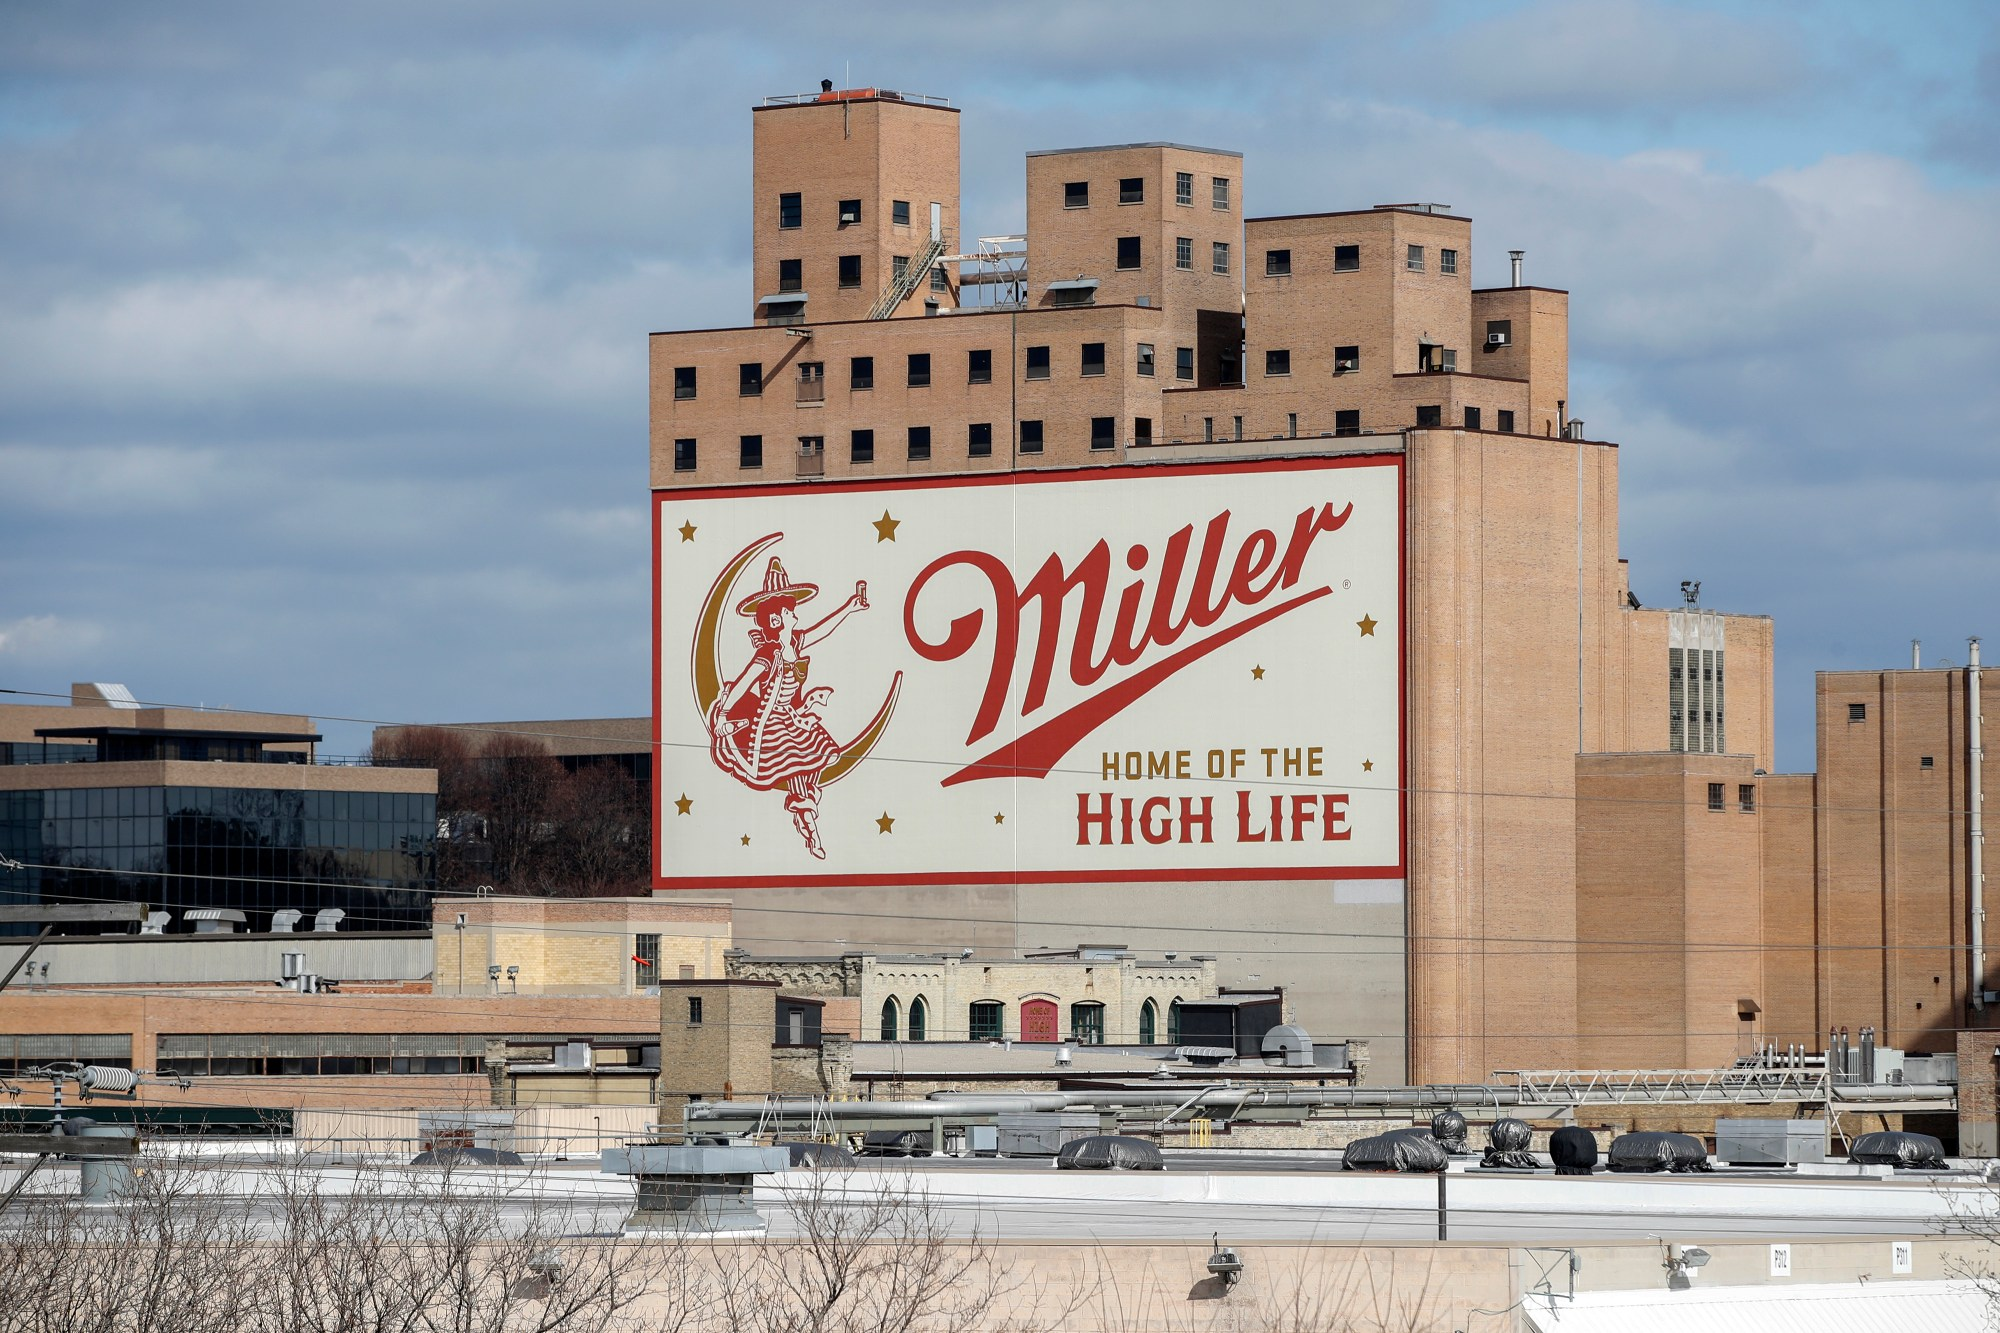 An exterior view of the Molson Coors Brewing Co. campus on Feb. 27, 2020, in Milwaukee, Wisc. On Feb. 26, an employee allegedly shot and killed five coworkers before killing himself. (Kamil Krzaczynski/Getty Images)